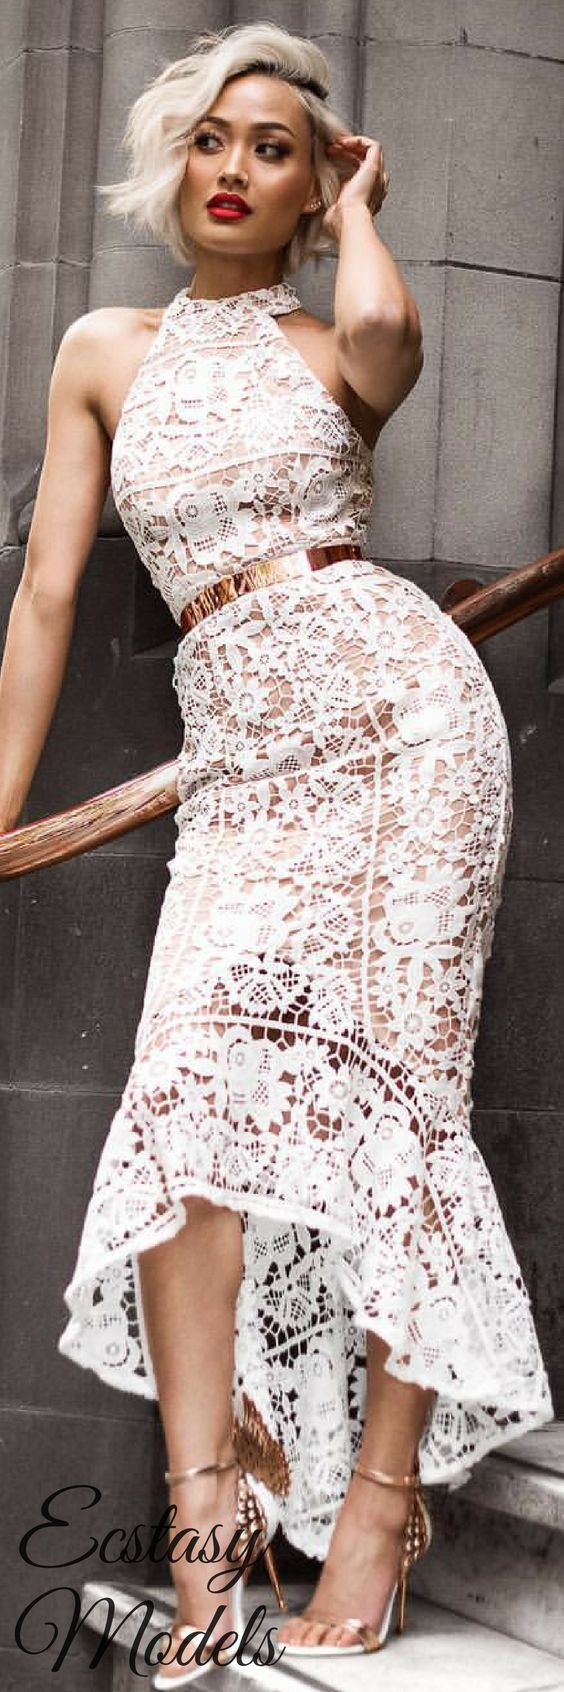 The perfect little white lace dress by jarlolondon fashion look